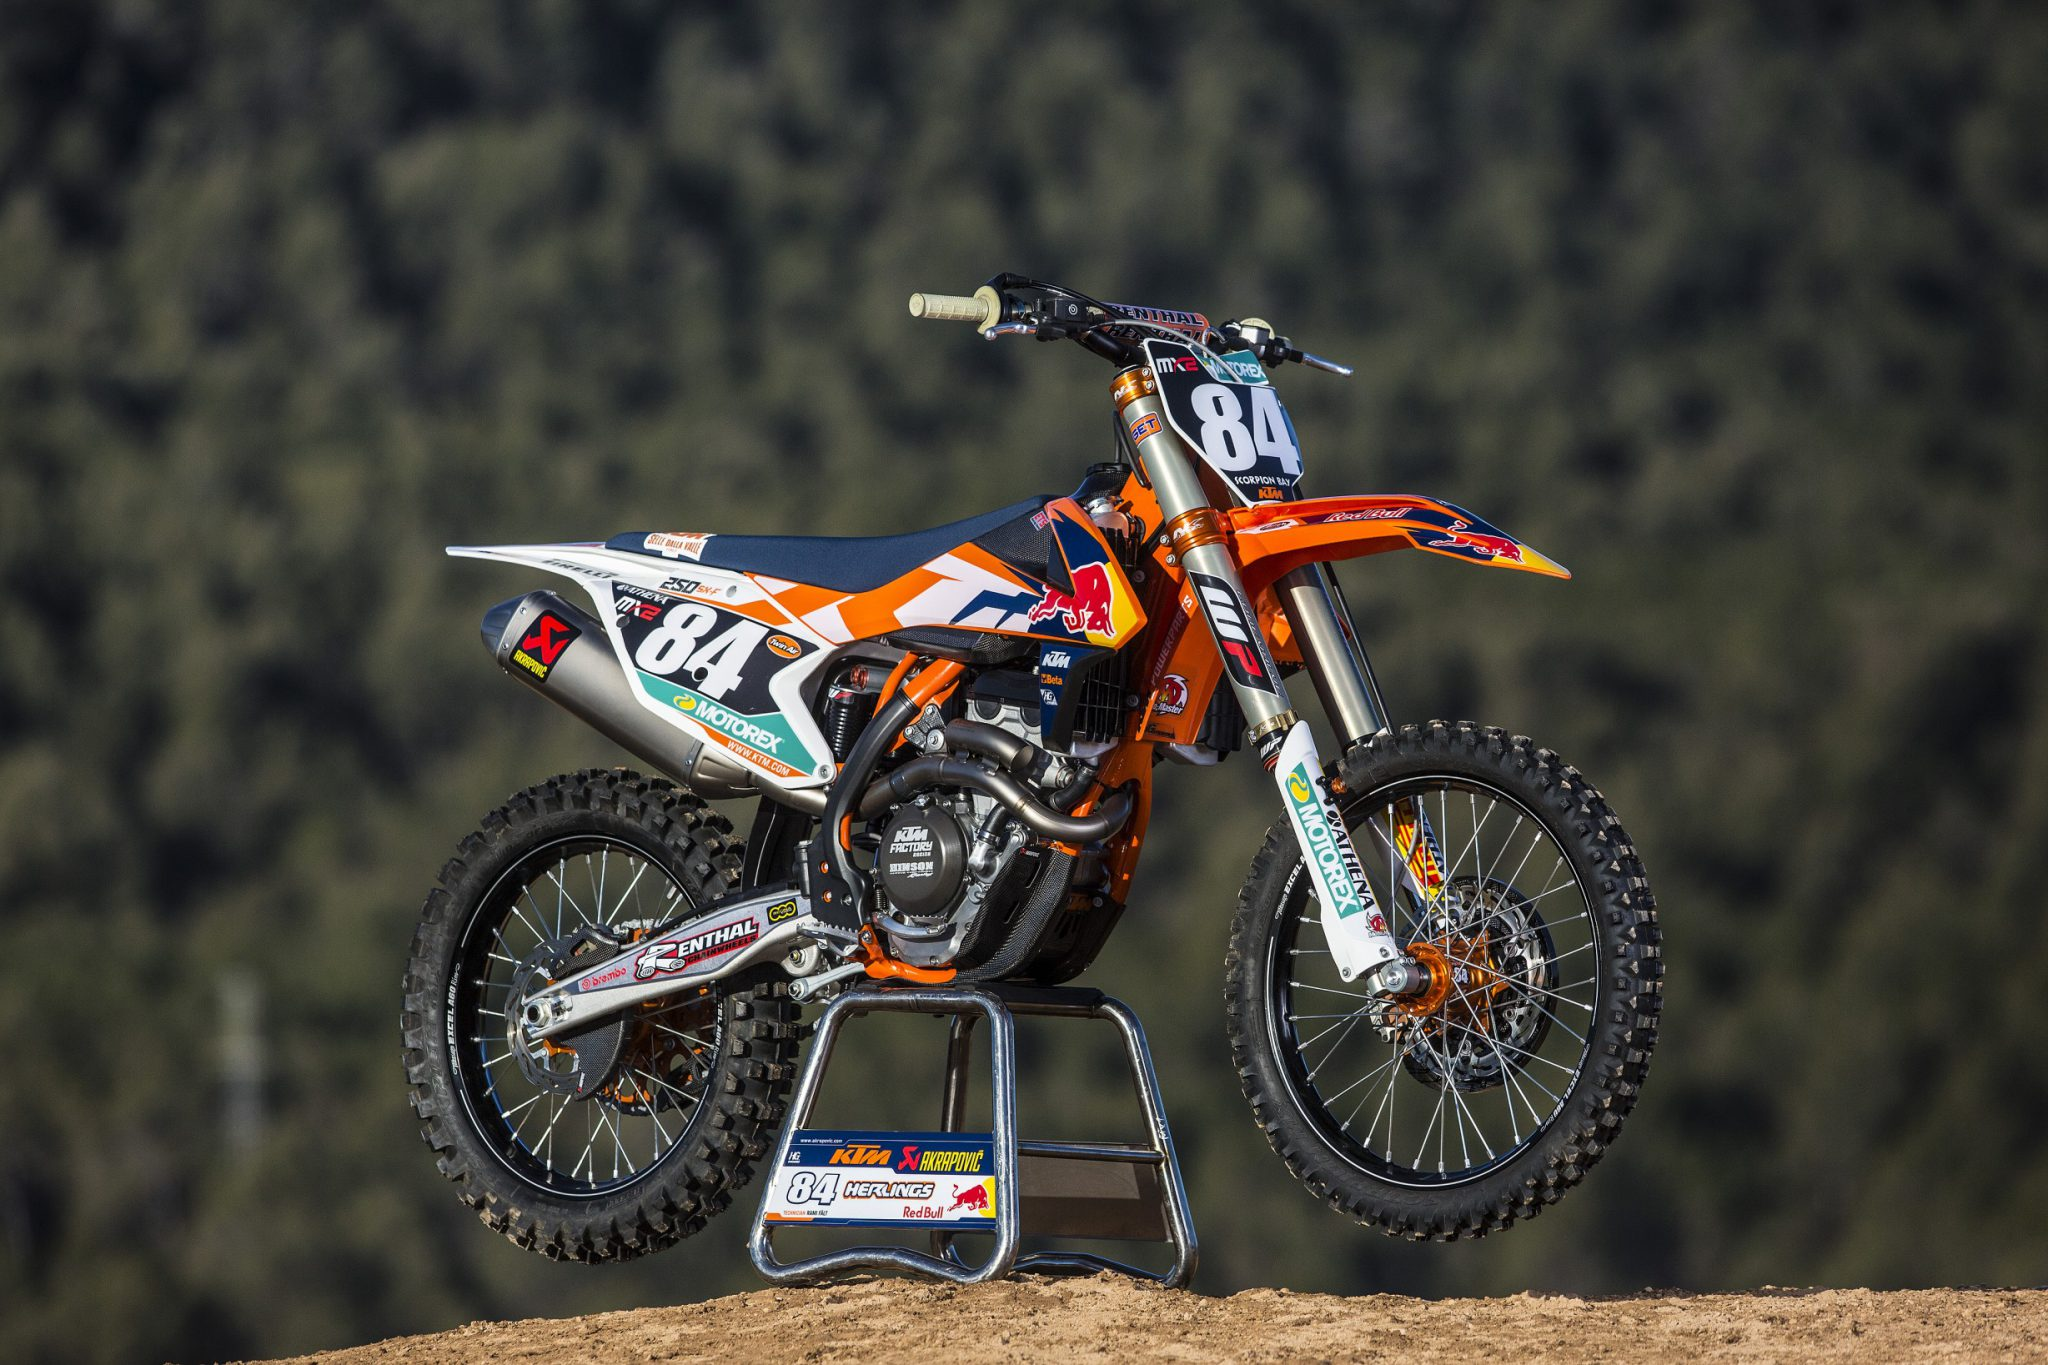 KTM_Herlings_Bike_2015